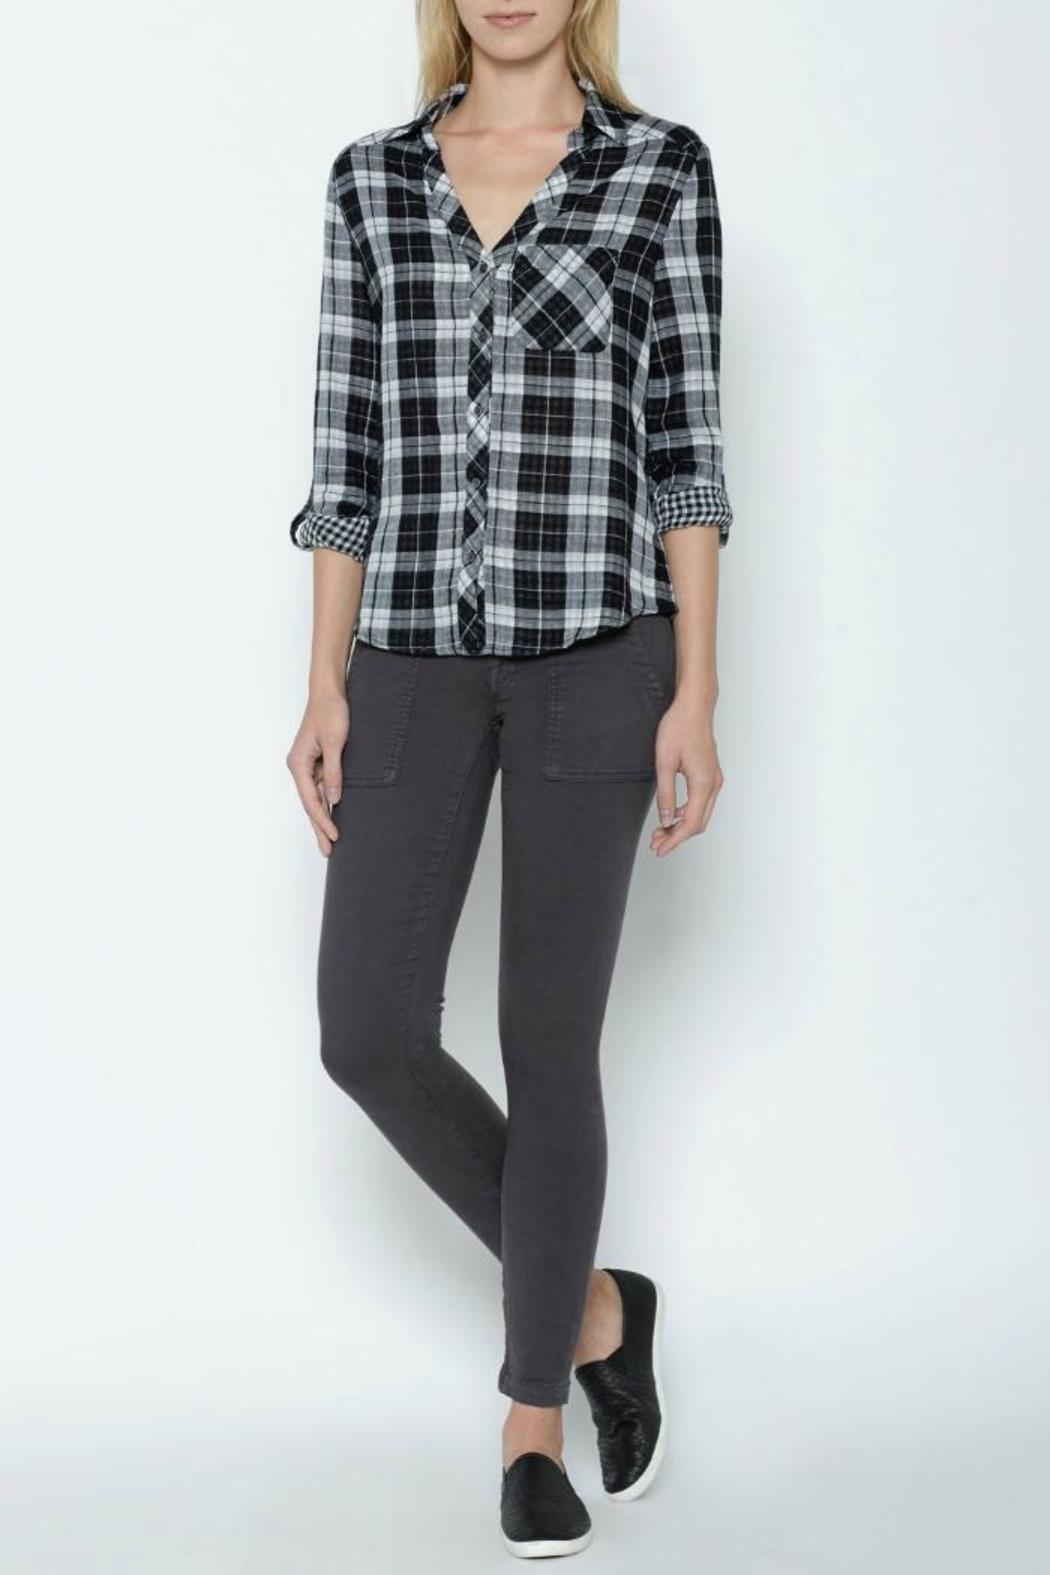 Joie Cydnee Plaid Shirt - Side Cropped Image